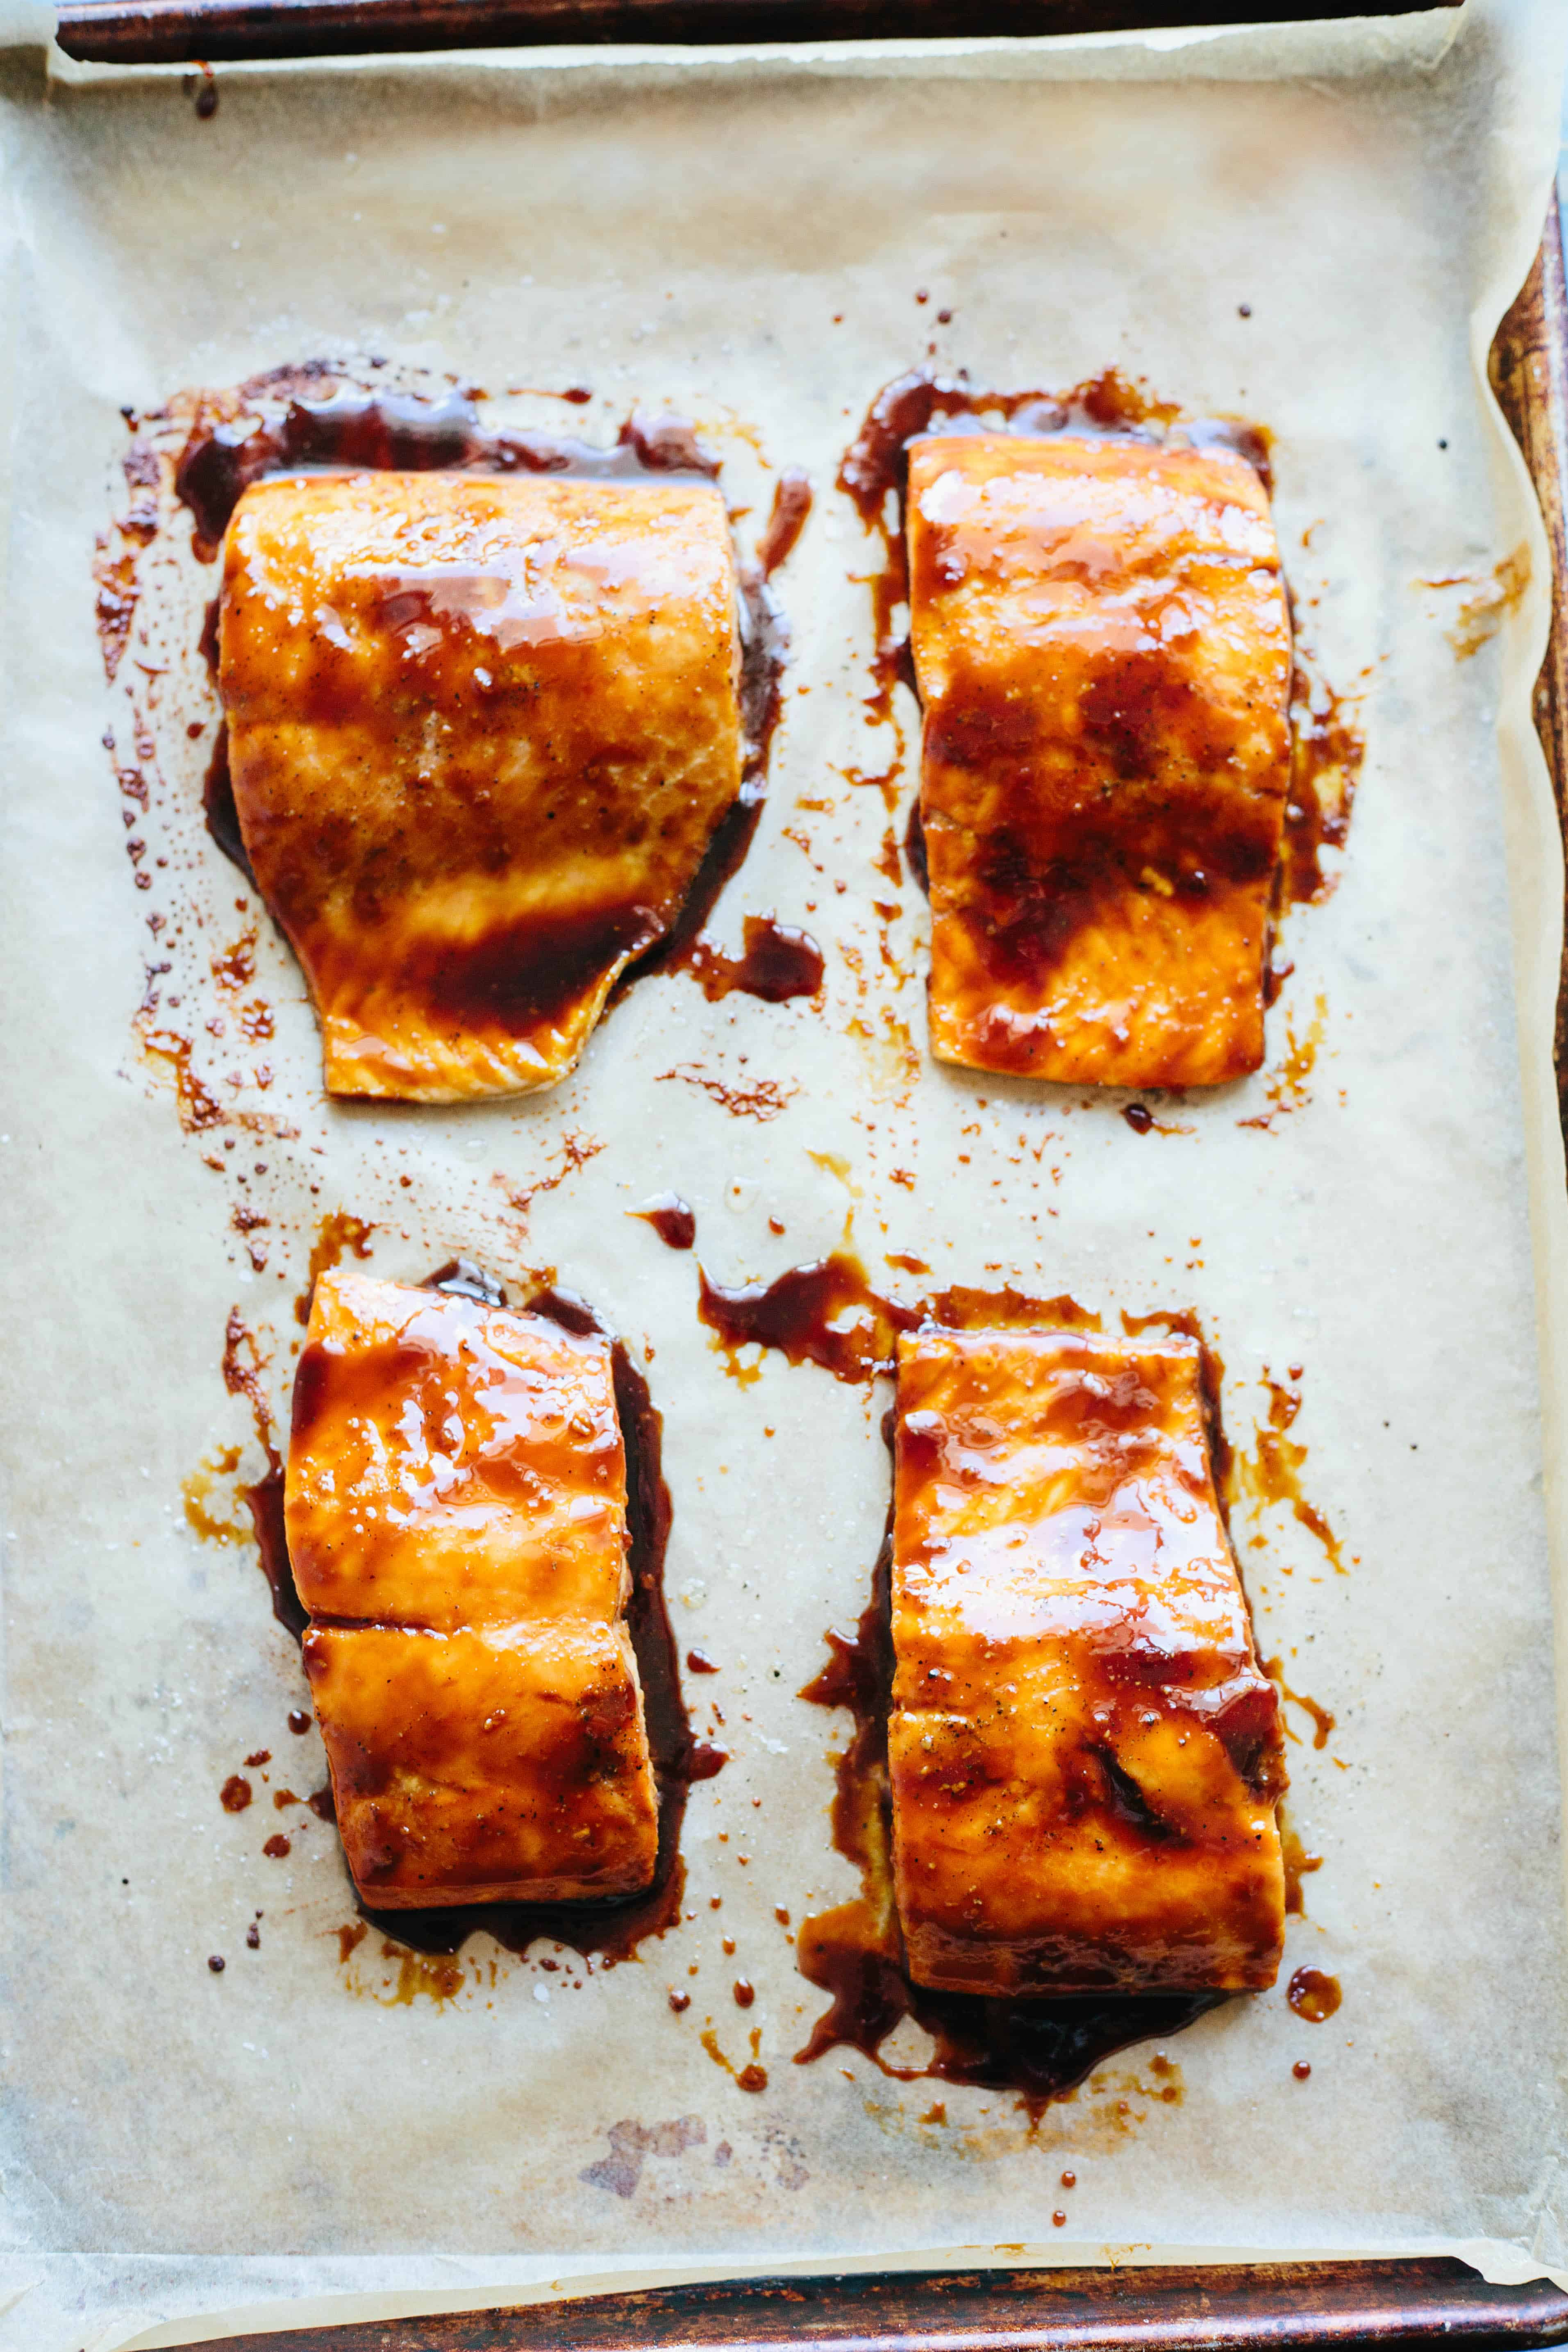 Four soy-glazed salmon filets on a parchment-lined baking sheet.